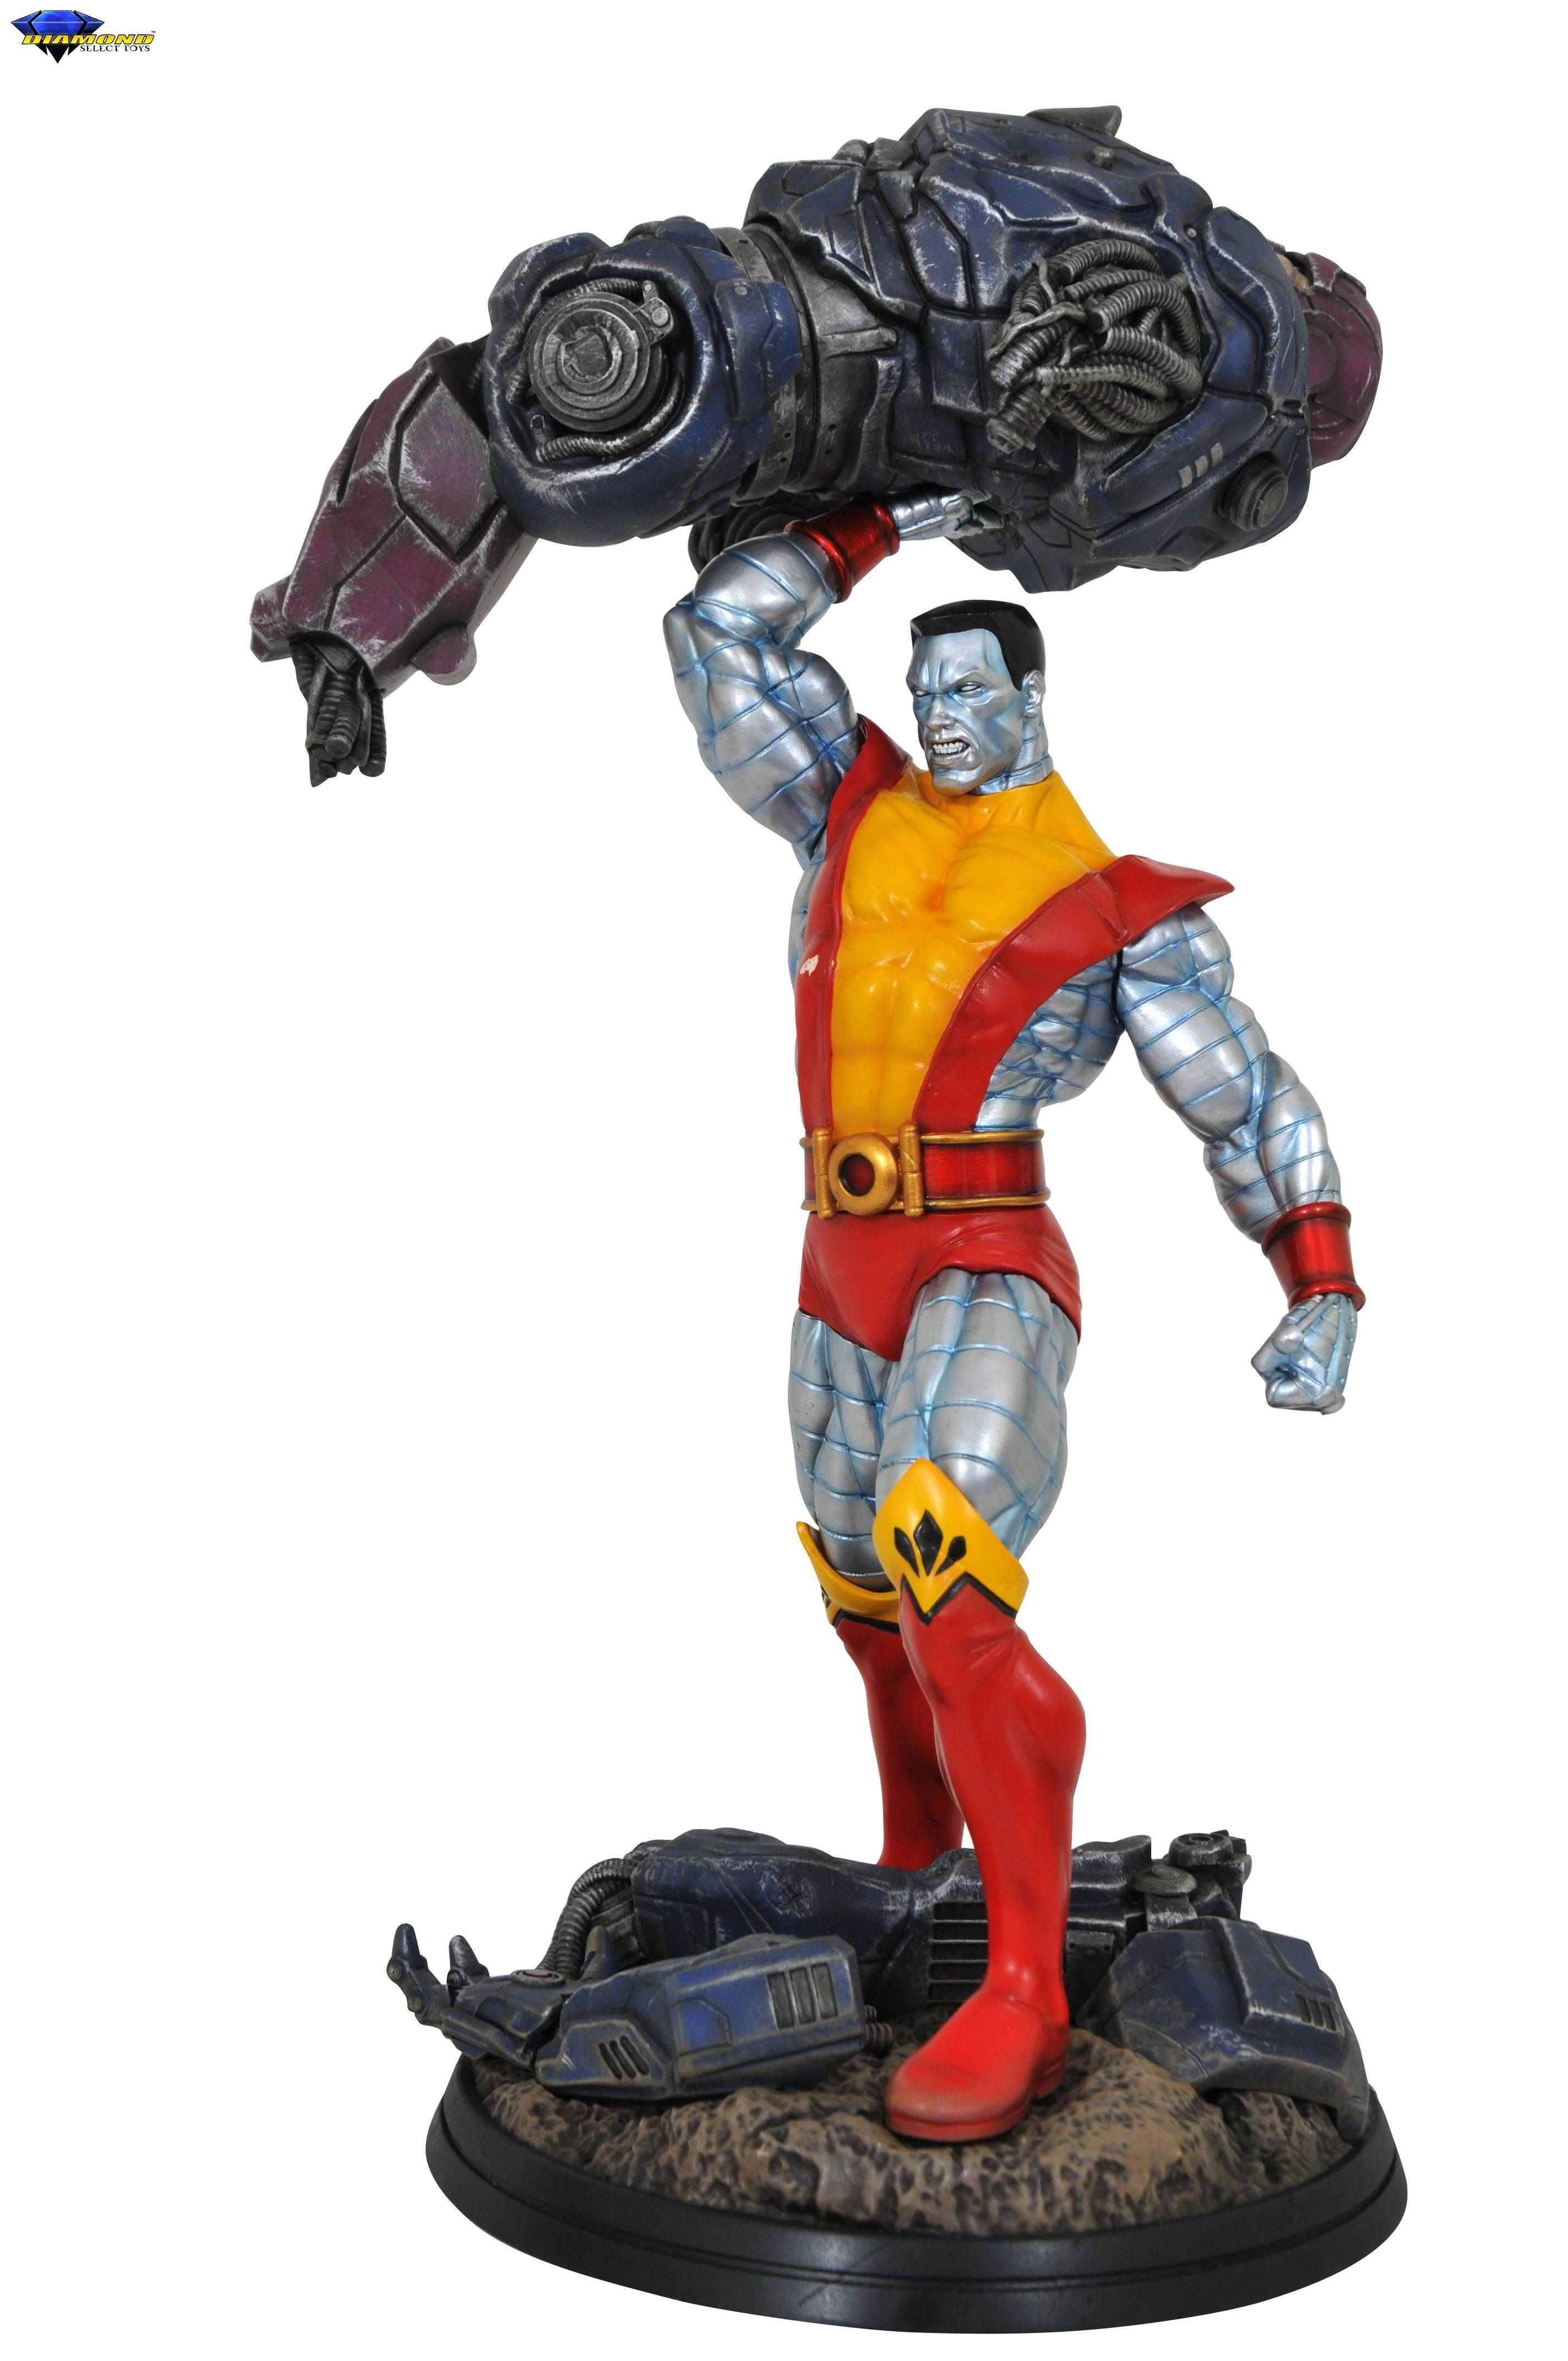 Pre-Order Diamond Marvel Premier Collection Colossus Statue